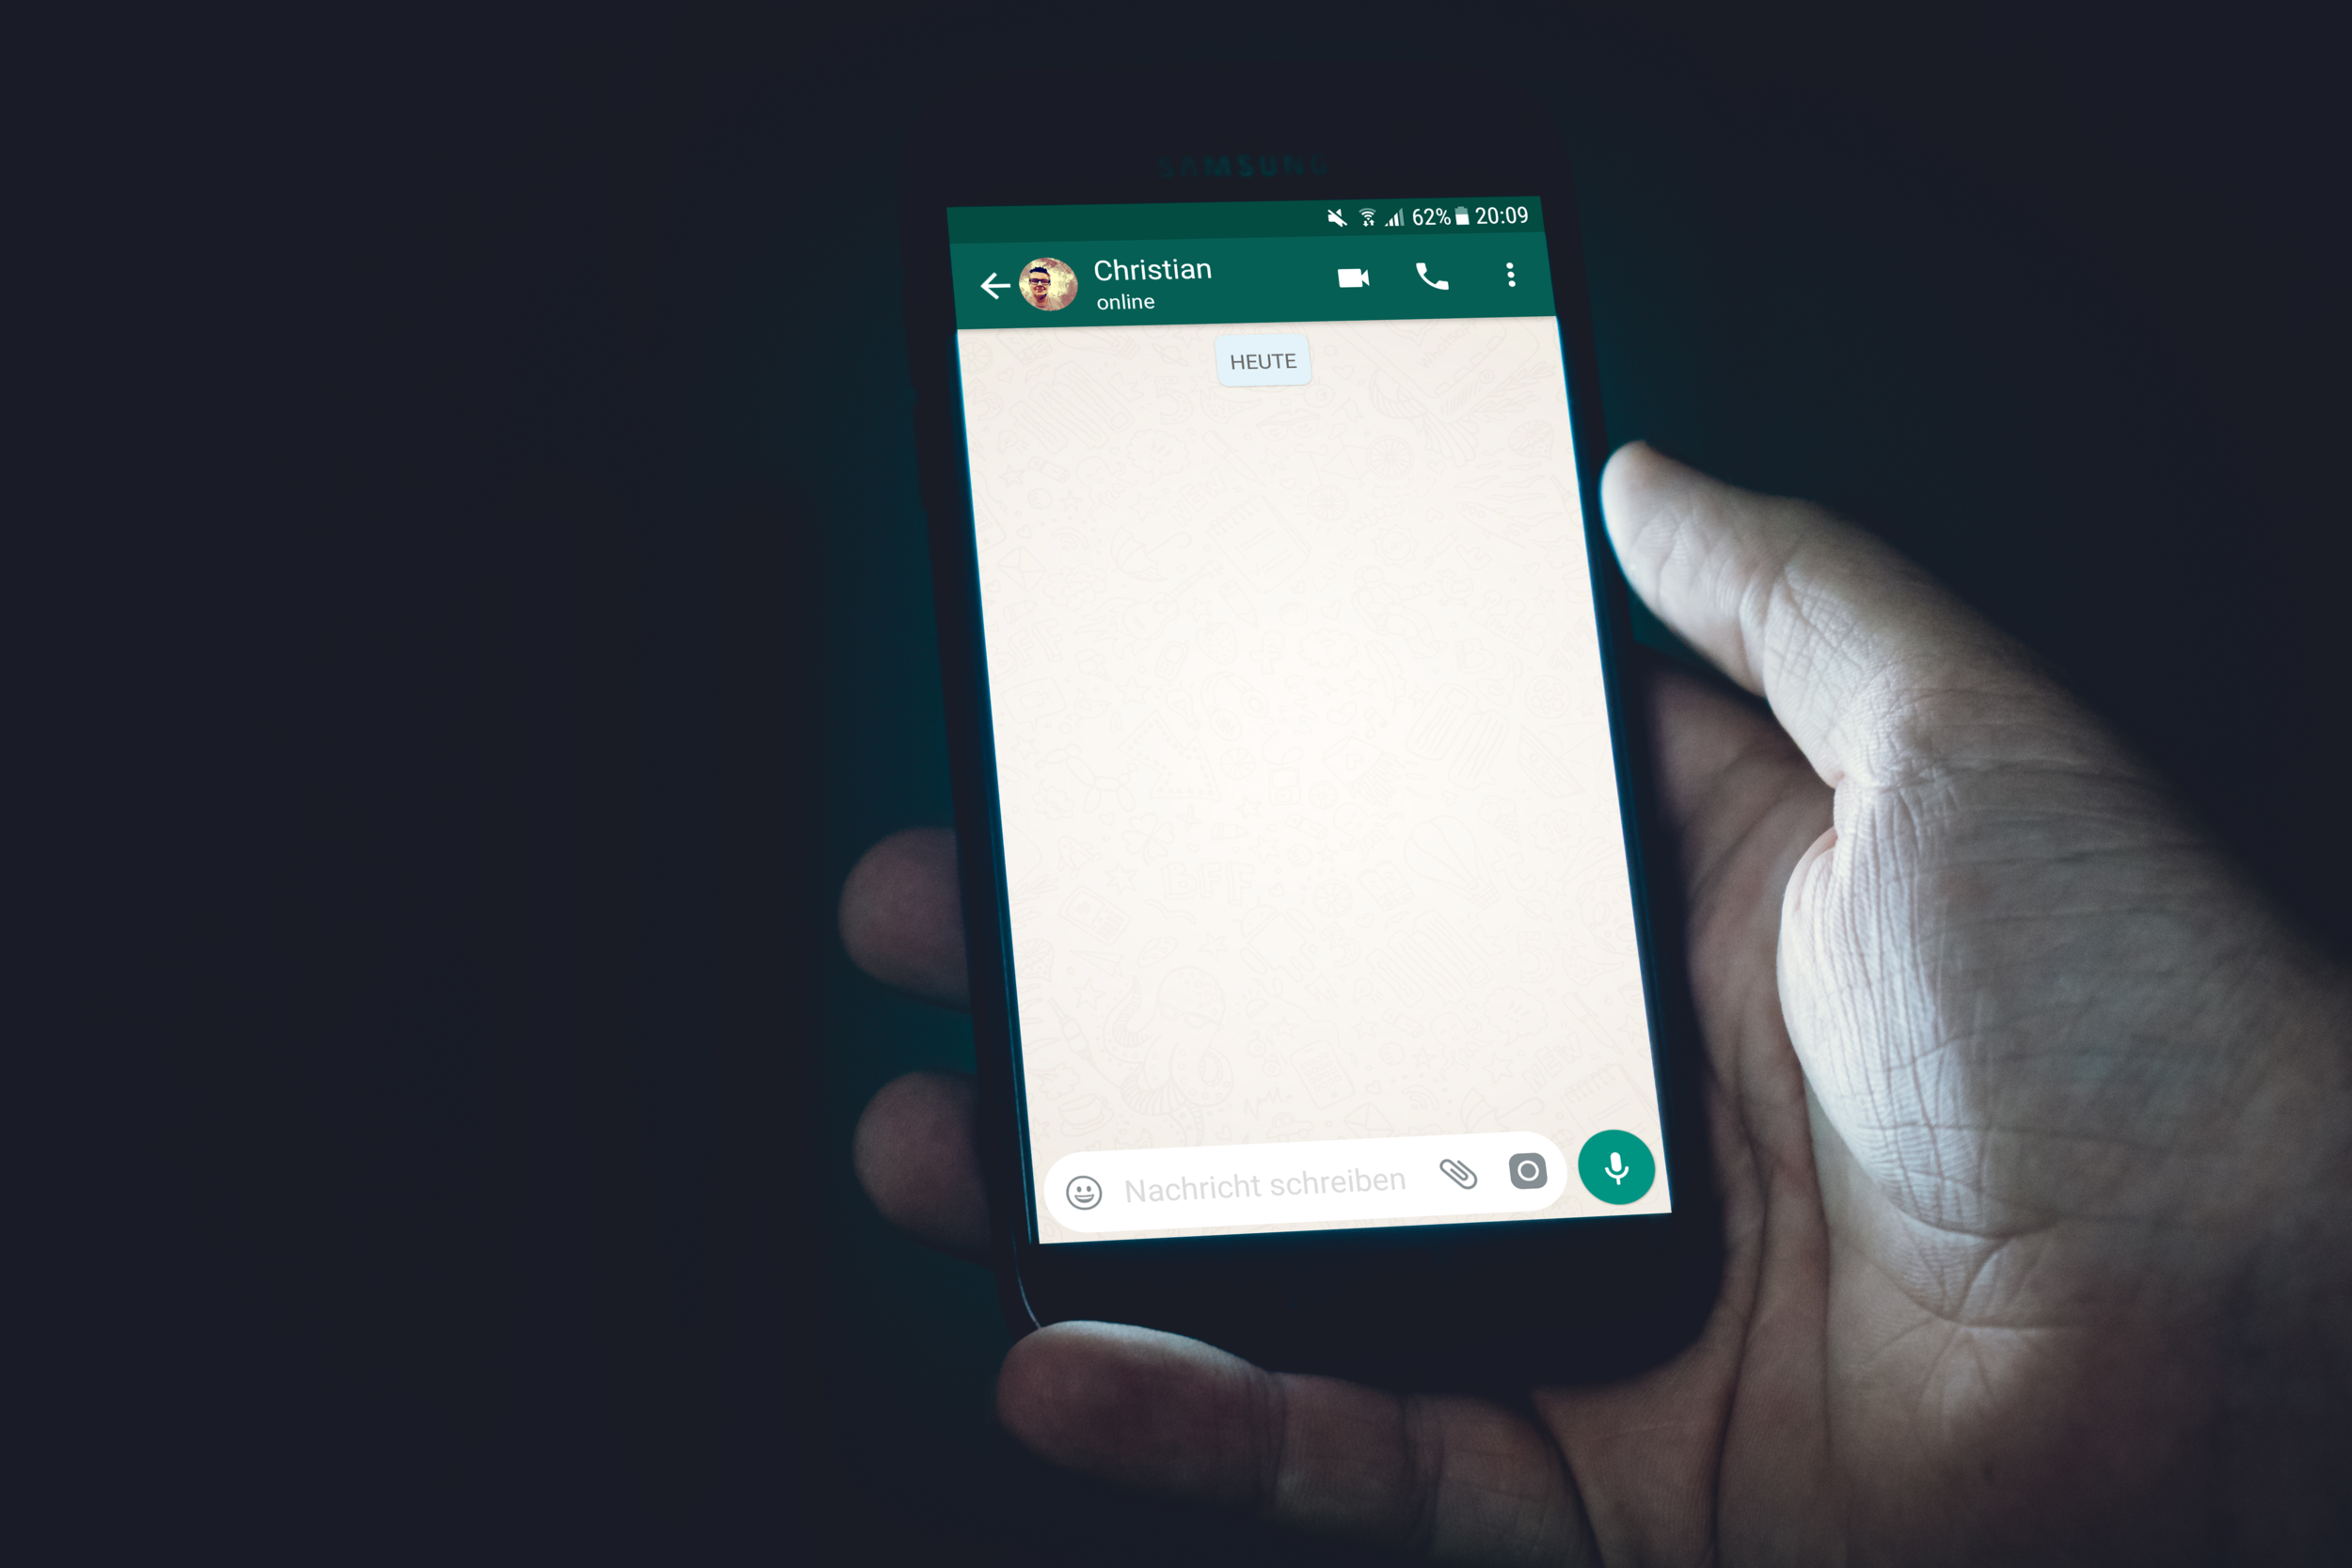 WhatsApp - The venture capital firm, Sequoia Capital, invested $60 million dollars in WhatsApp for 18% of ownership in what was a relatively small startup at the time. About 3 years later, WhatsApp was acquired by Facebook for $3 billion dollars. That means that Sequoia Capital earned 50x their original investment in WhatsApp!